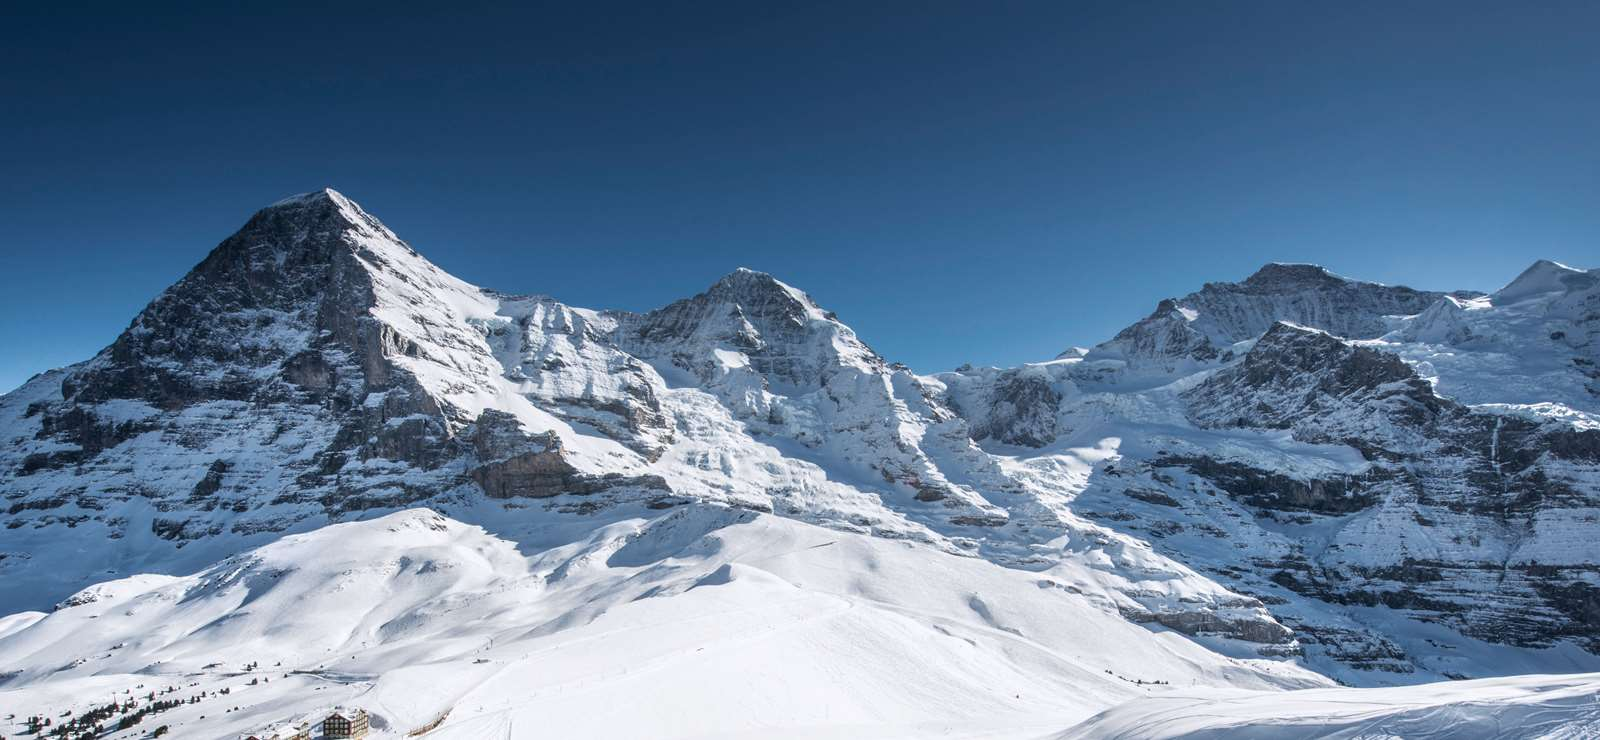 The Jungfrau peaks of the Eiger, Mönch and Jungfrau